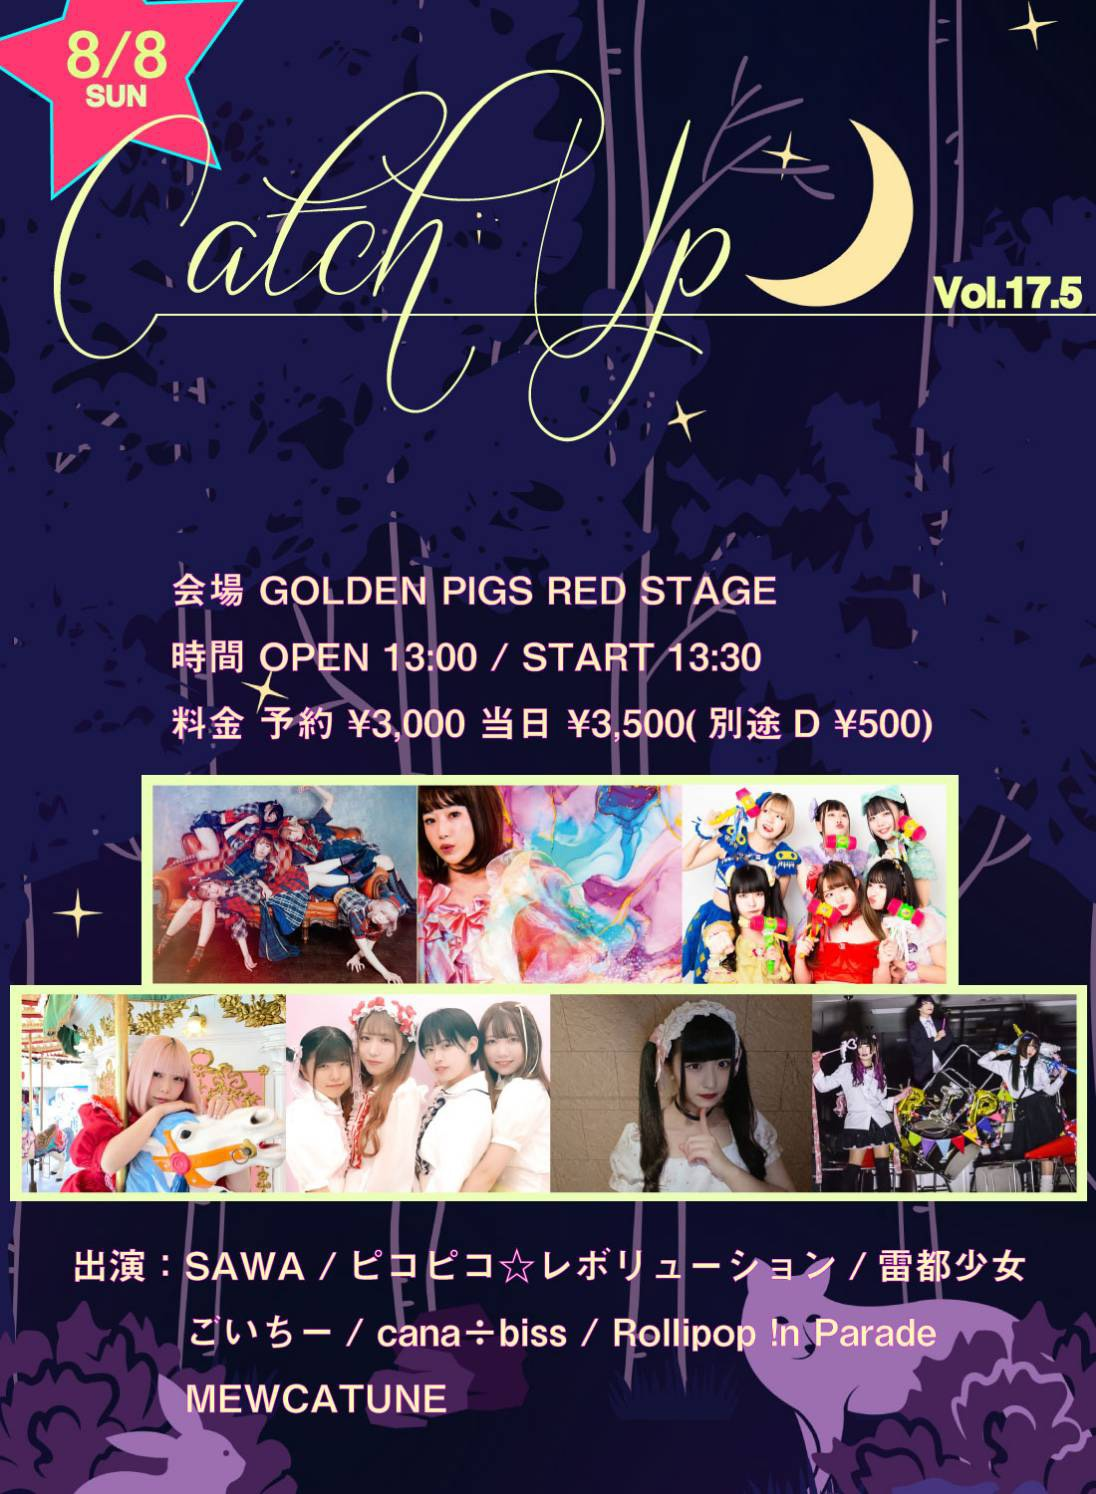 Catch Up Vol.17.5 @ GOLDEN PIGS RED STAGE